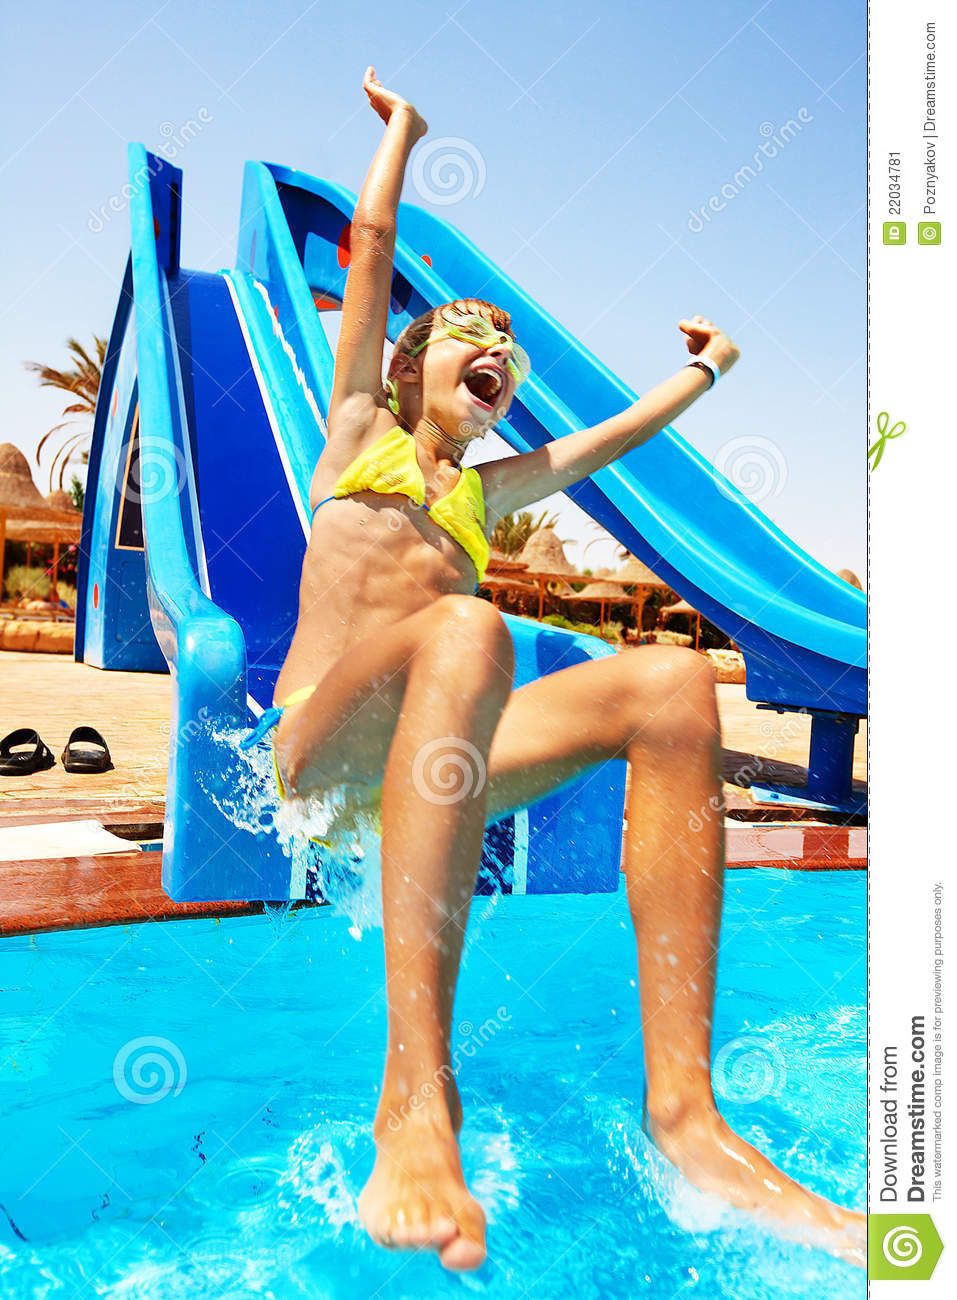 Water slide bikini malfunctions